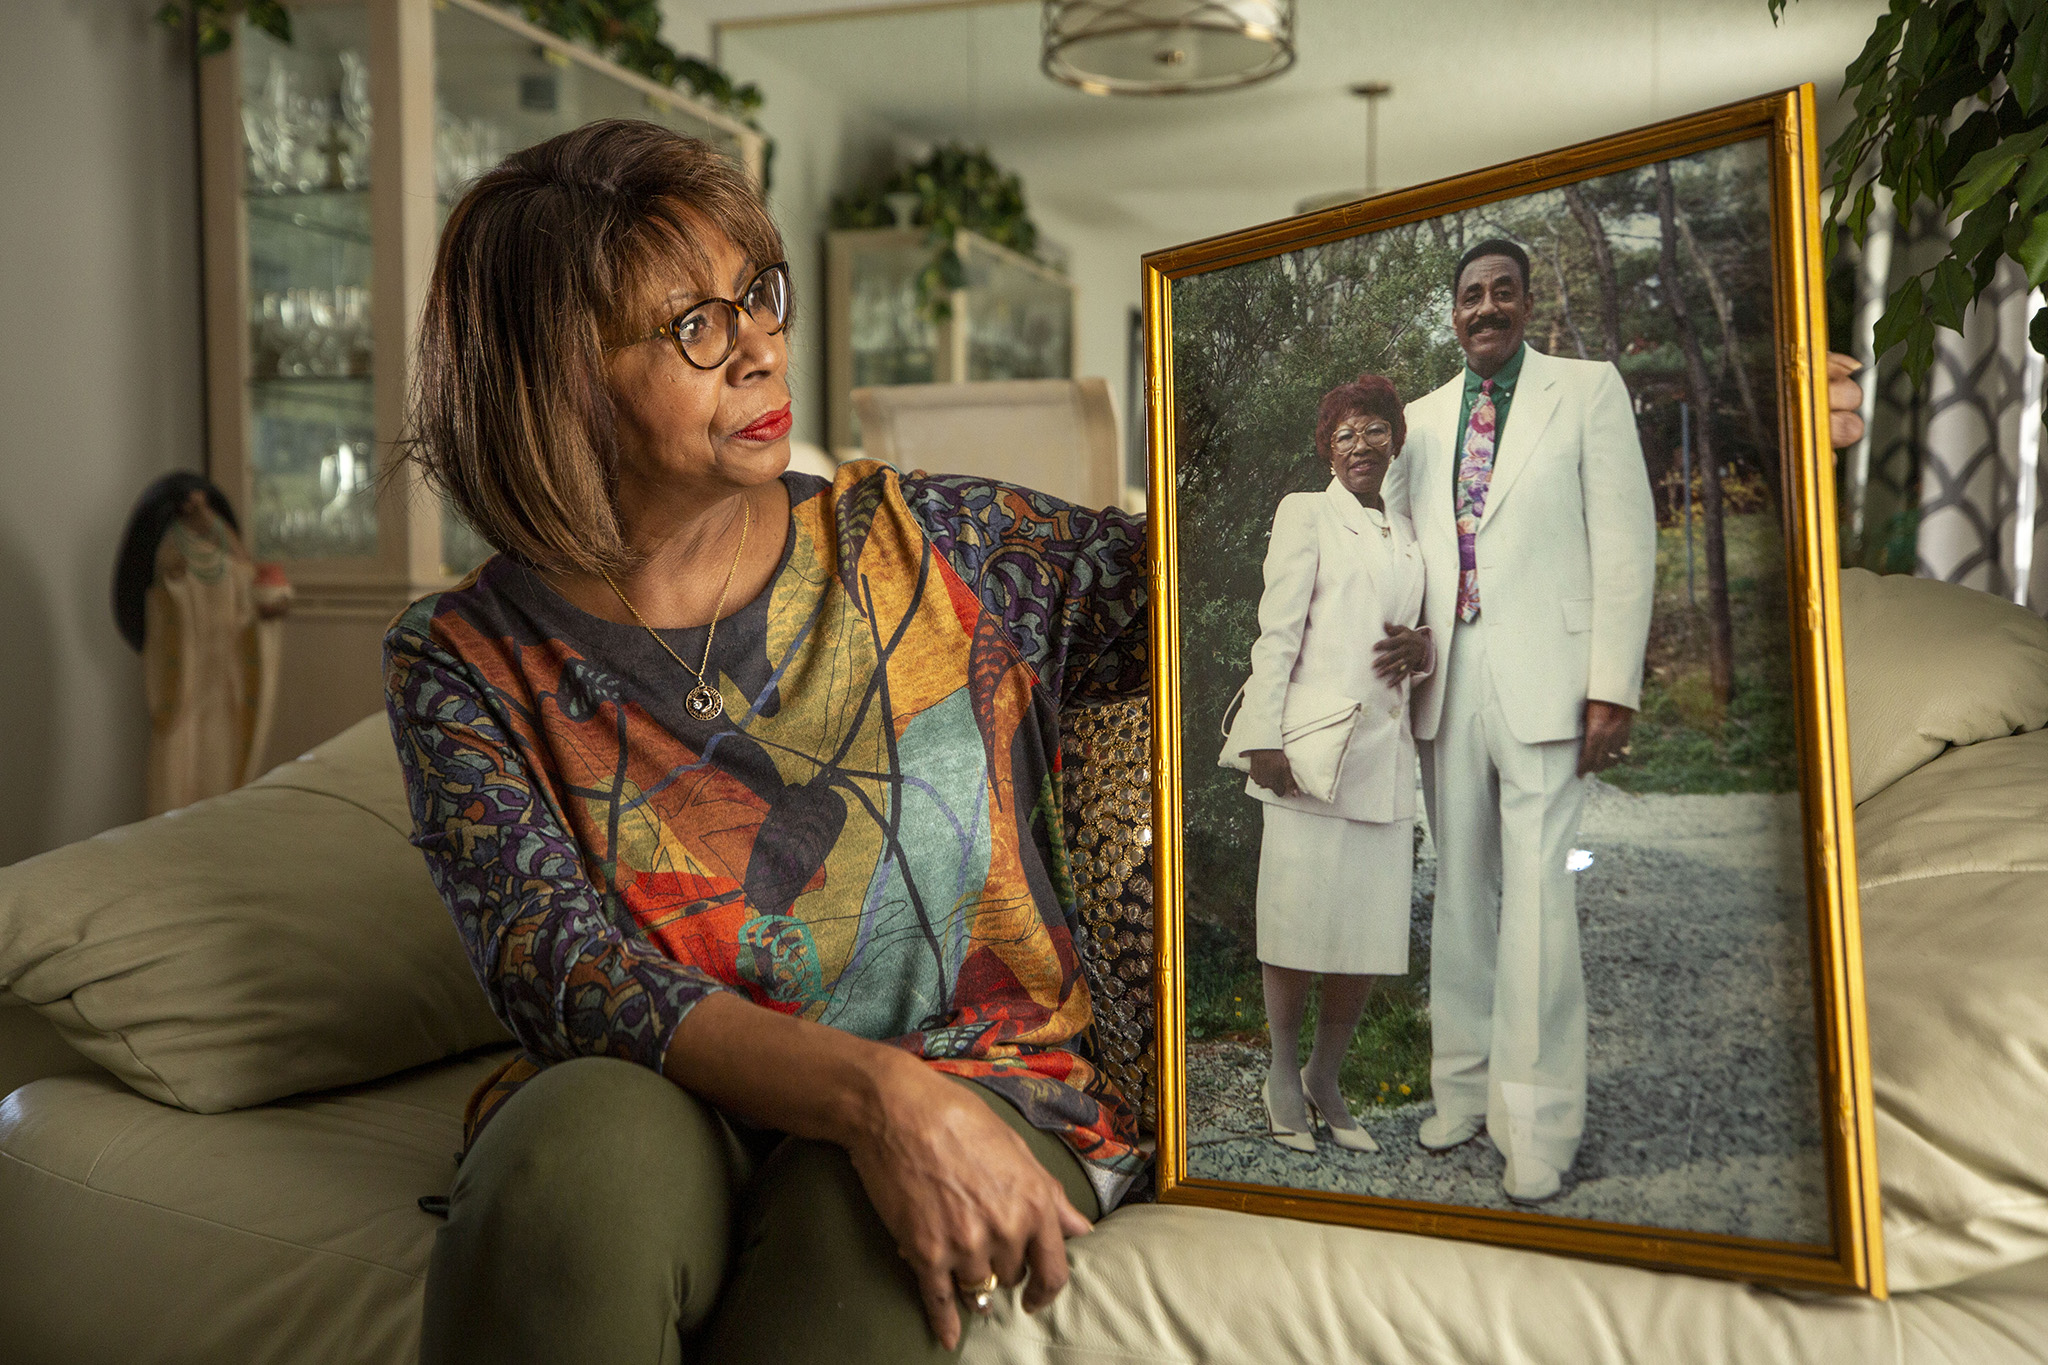 Jeannie Davis sits with a portrait of her parents, Dottie and James, inside her home in Aurora. Feb. 26, 2021.